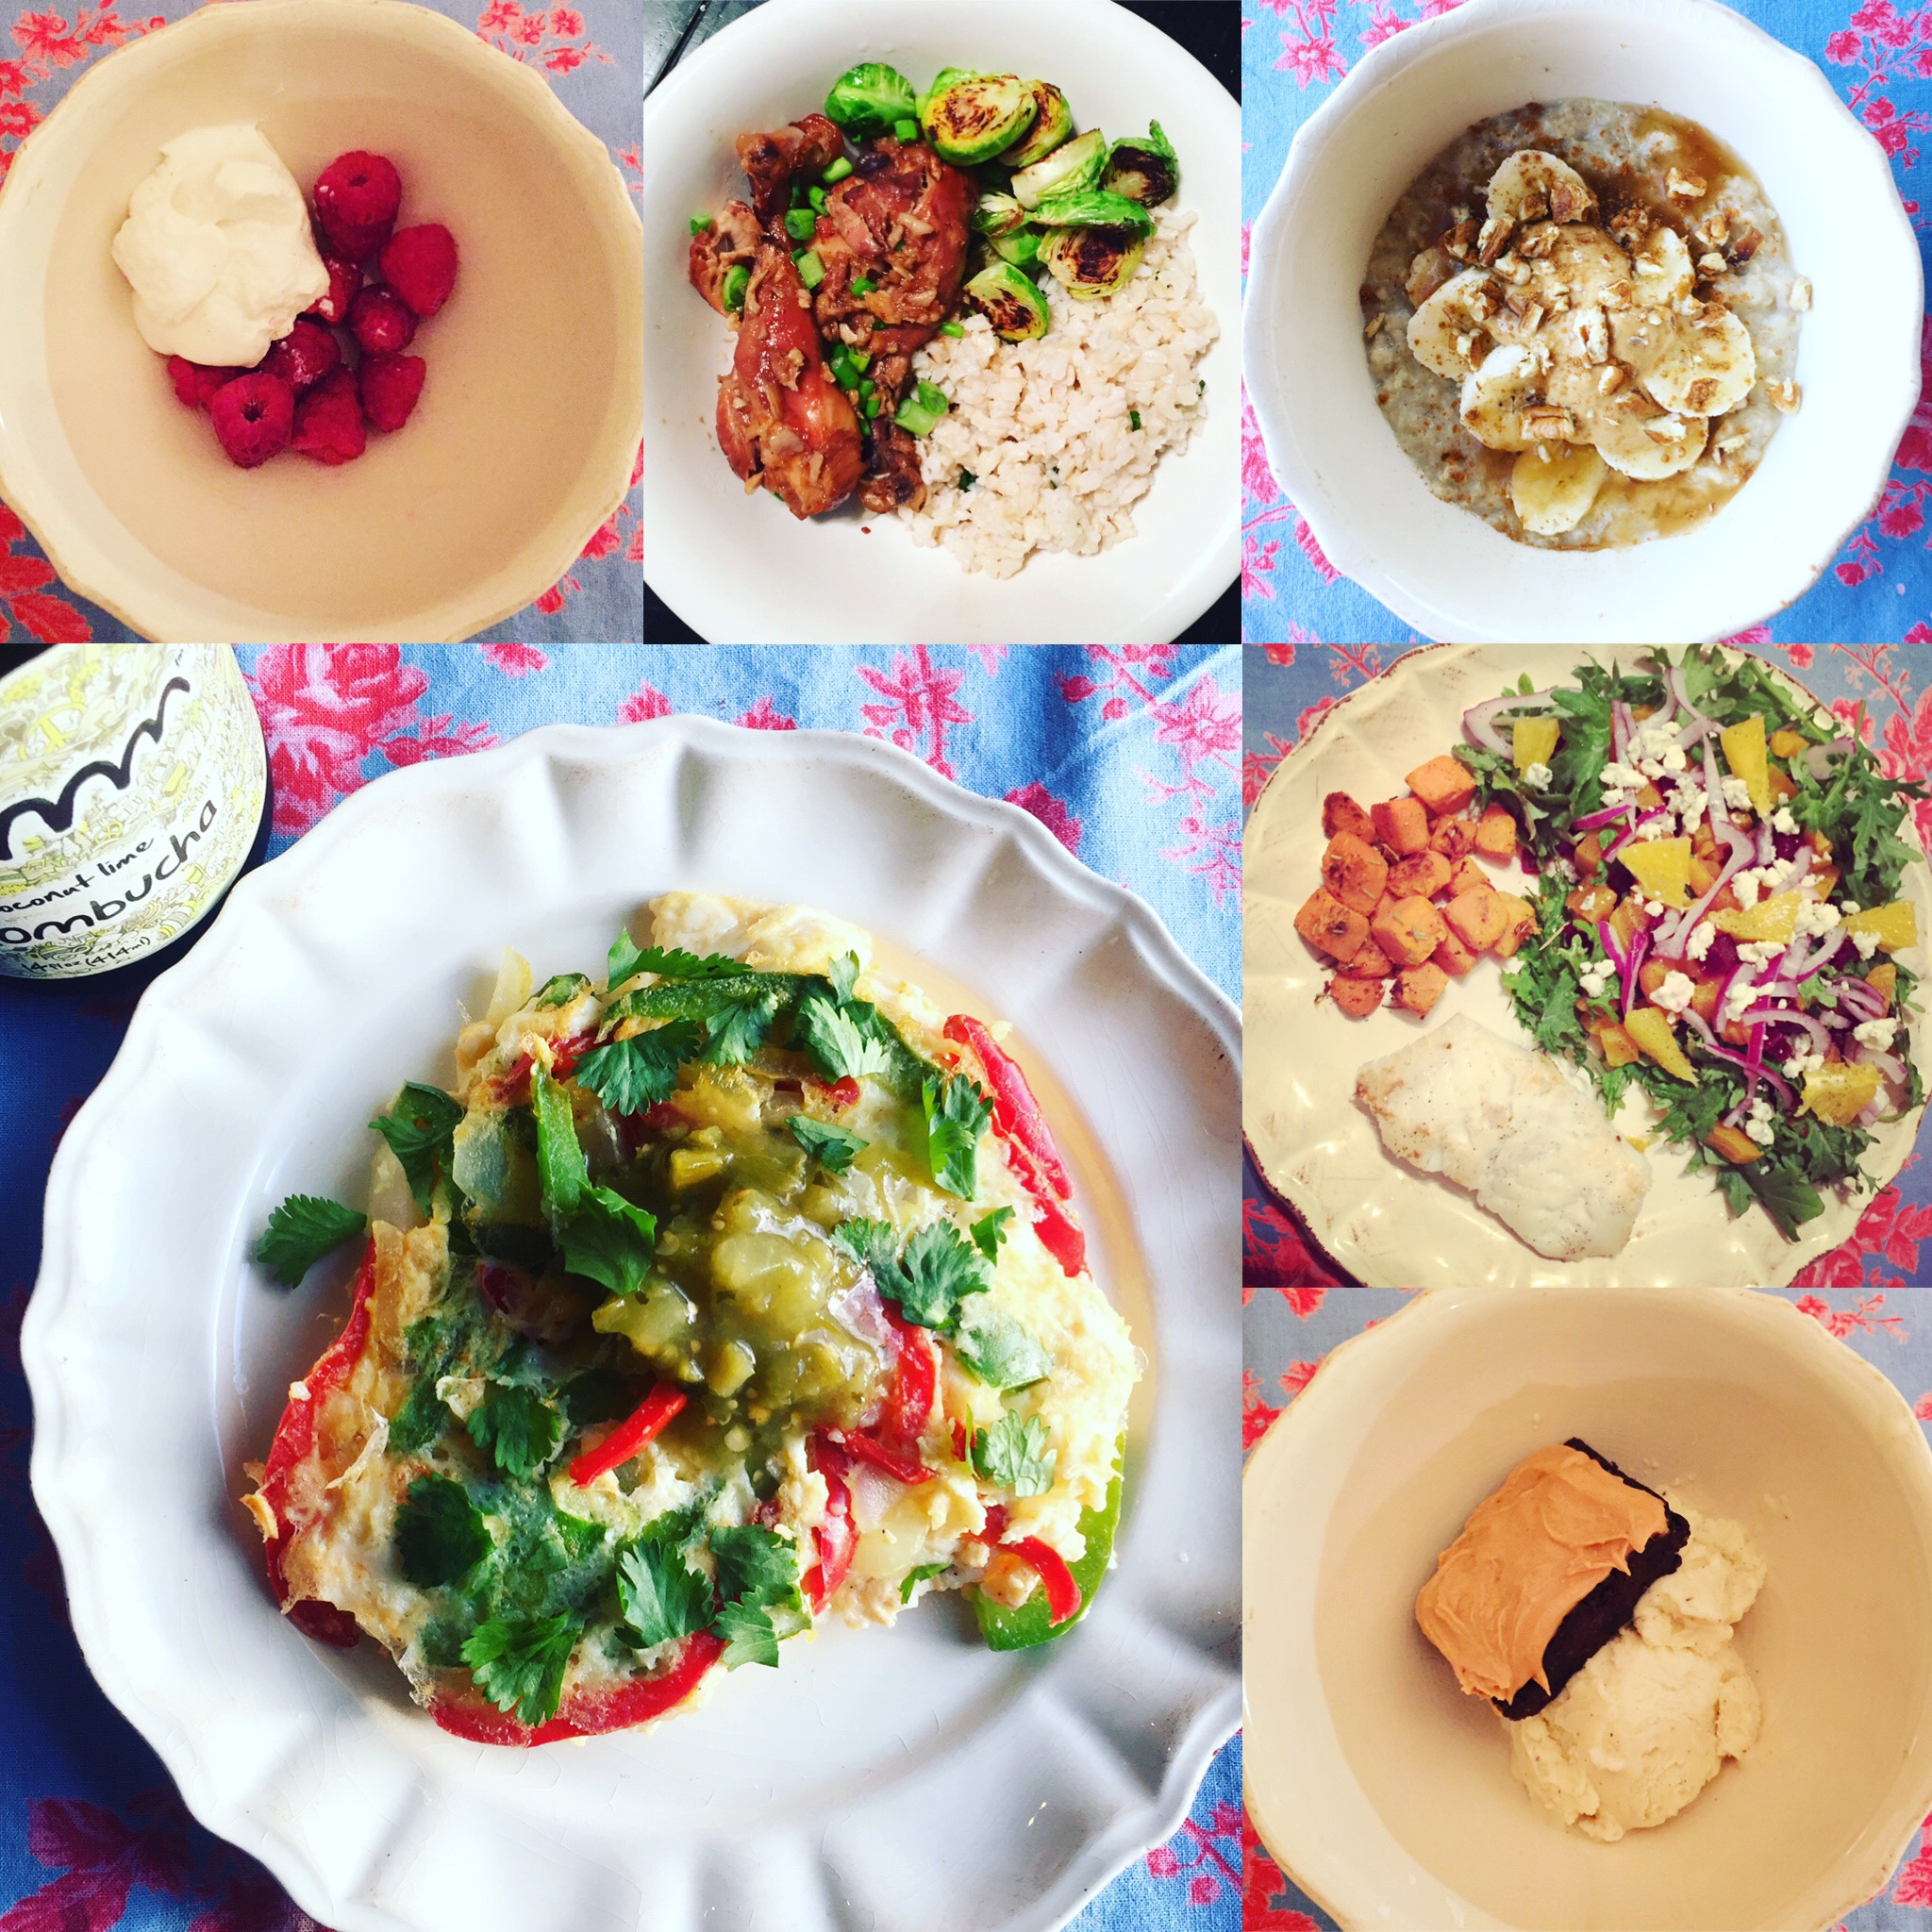 From largest photo clockwise: Breakfast, Mid-morning snack, Lunch, Pre-Workout snack, Dinner, Dessert.